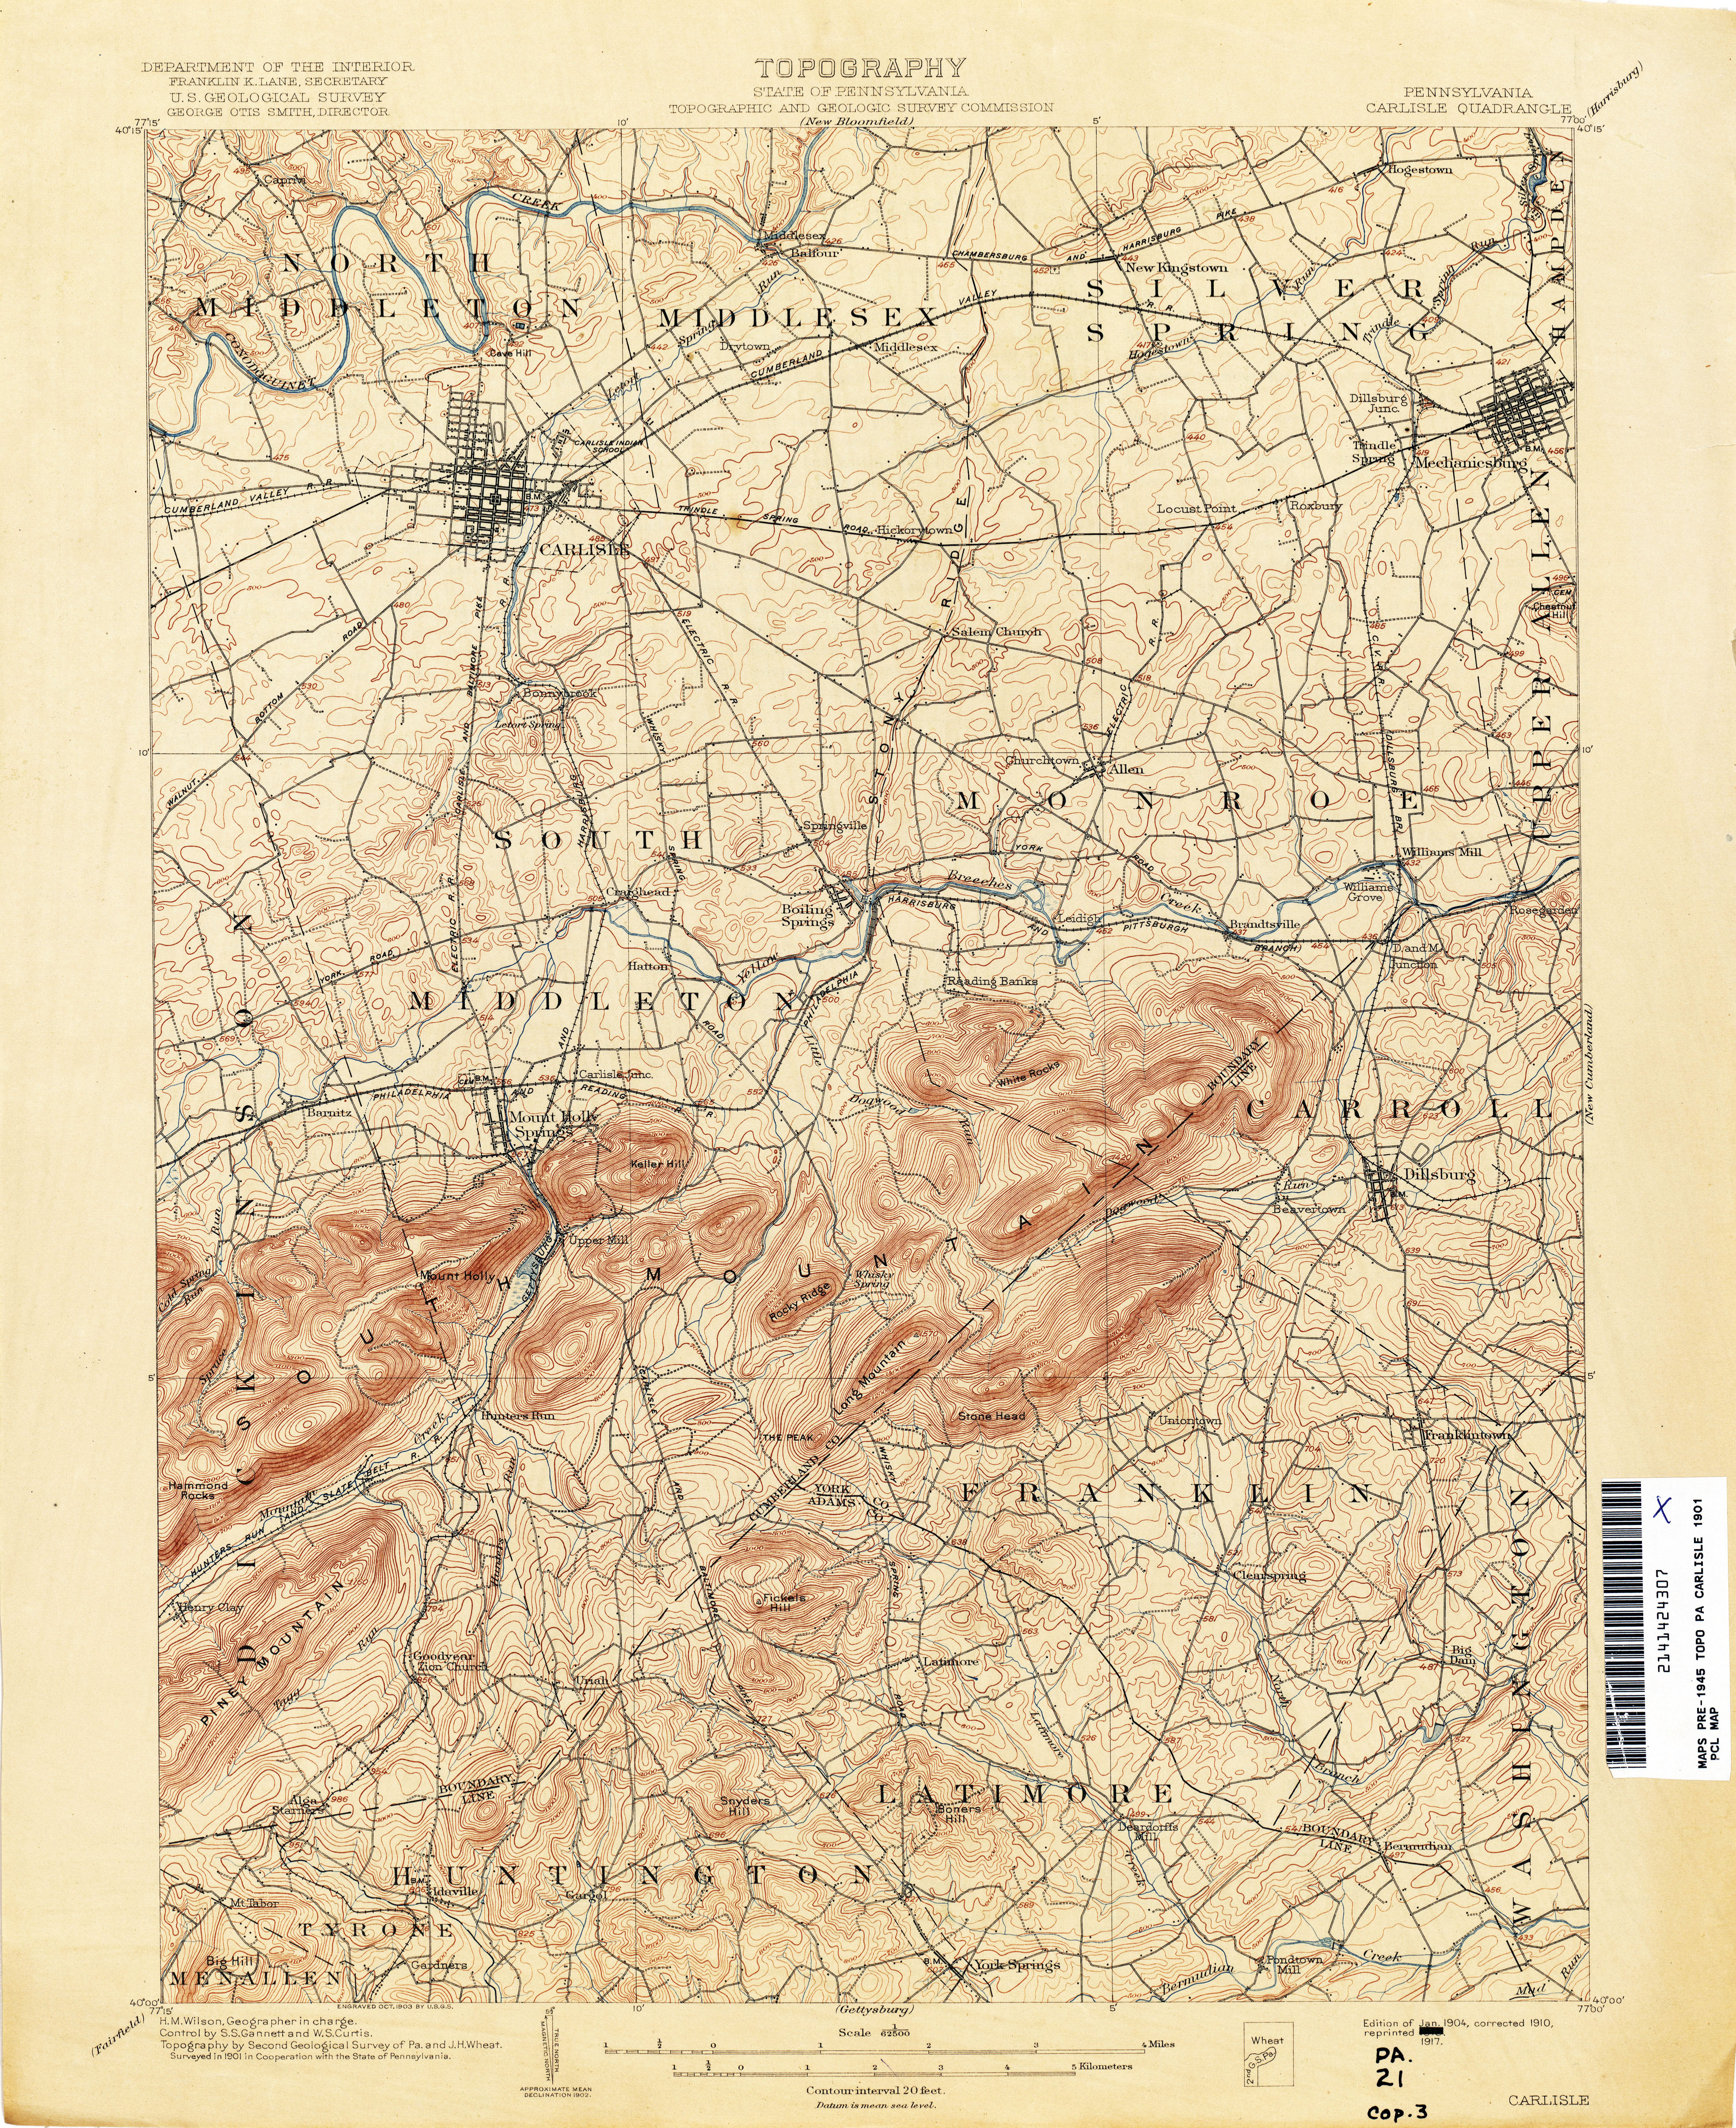 Gettysburg Topographic Map.Pennsylvania Historical Topographic Maps Perry Castaneda Map